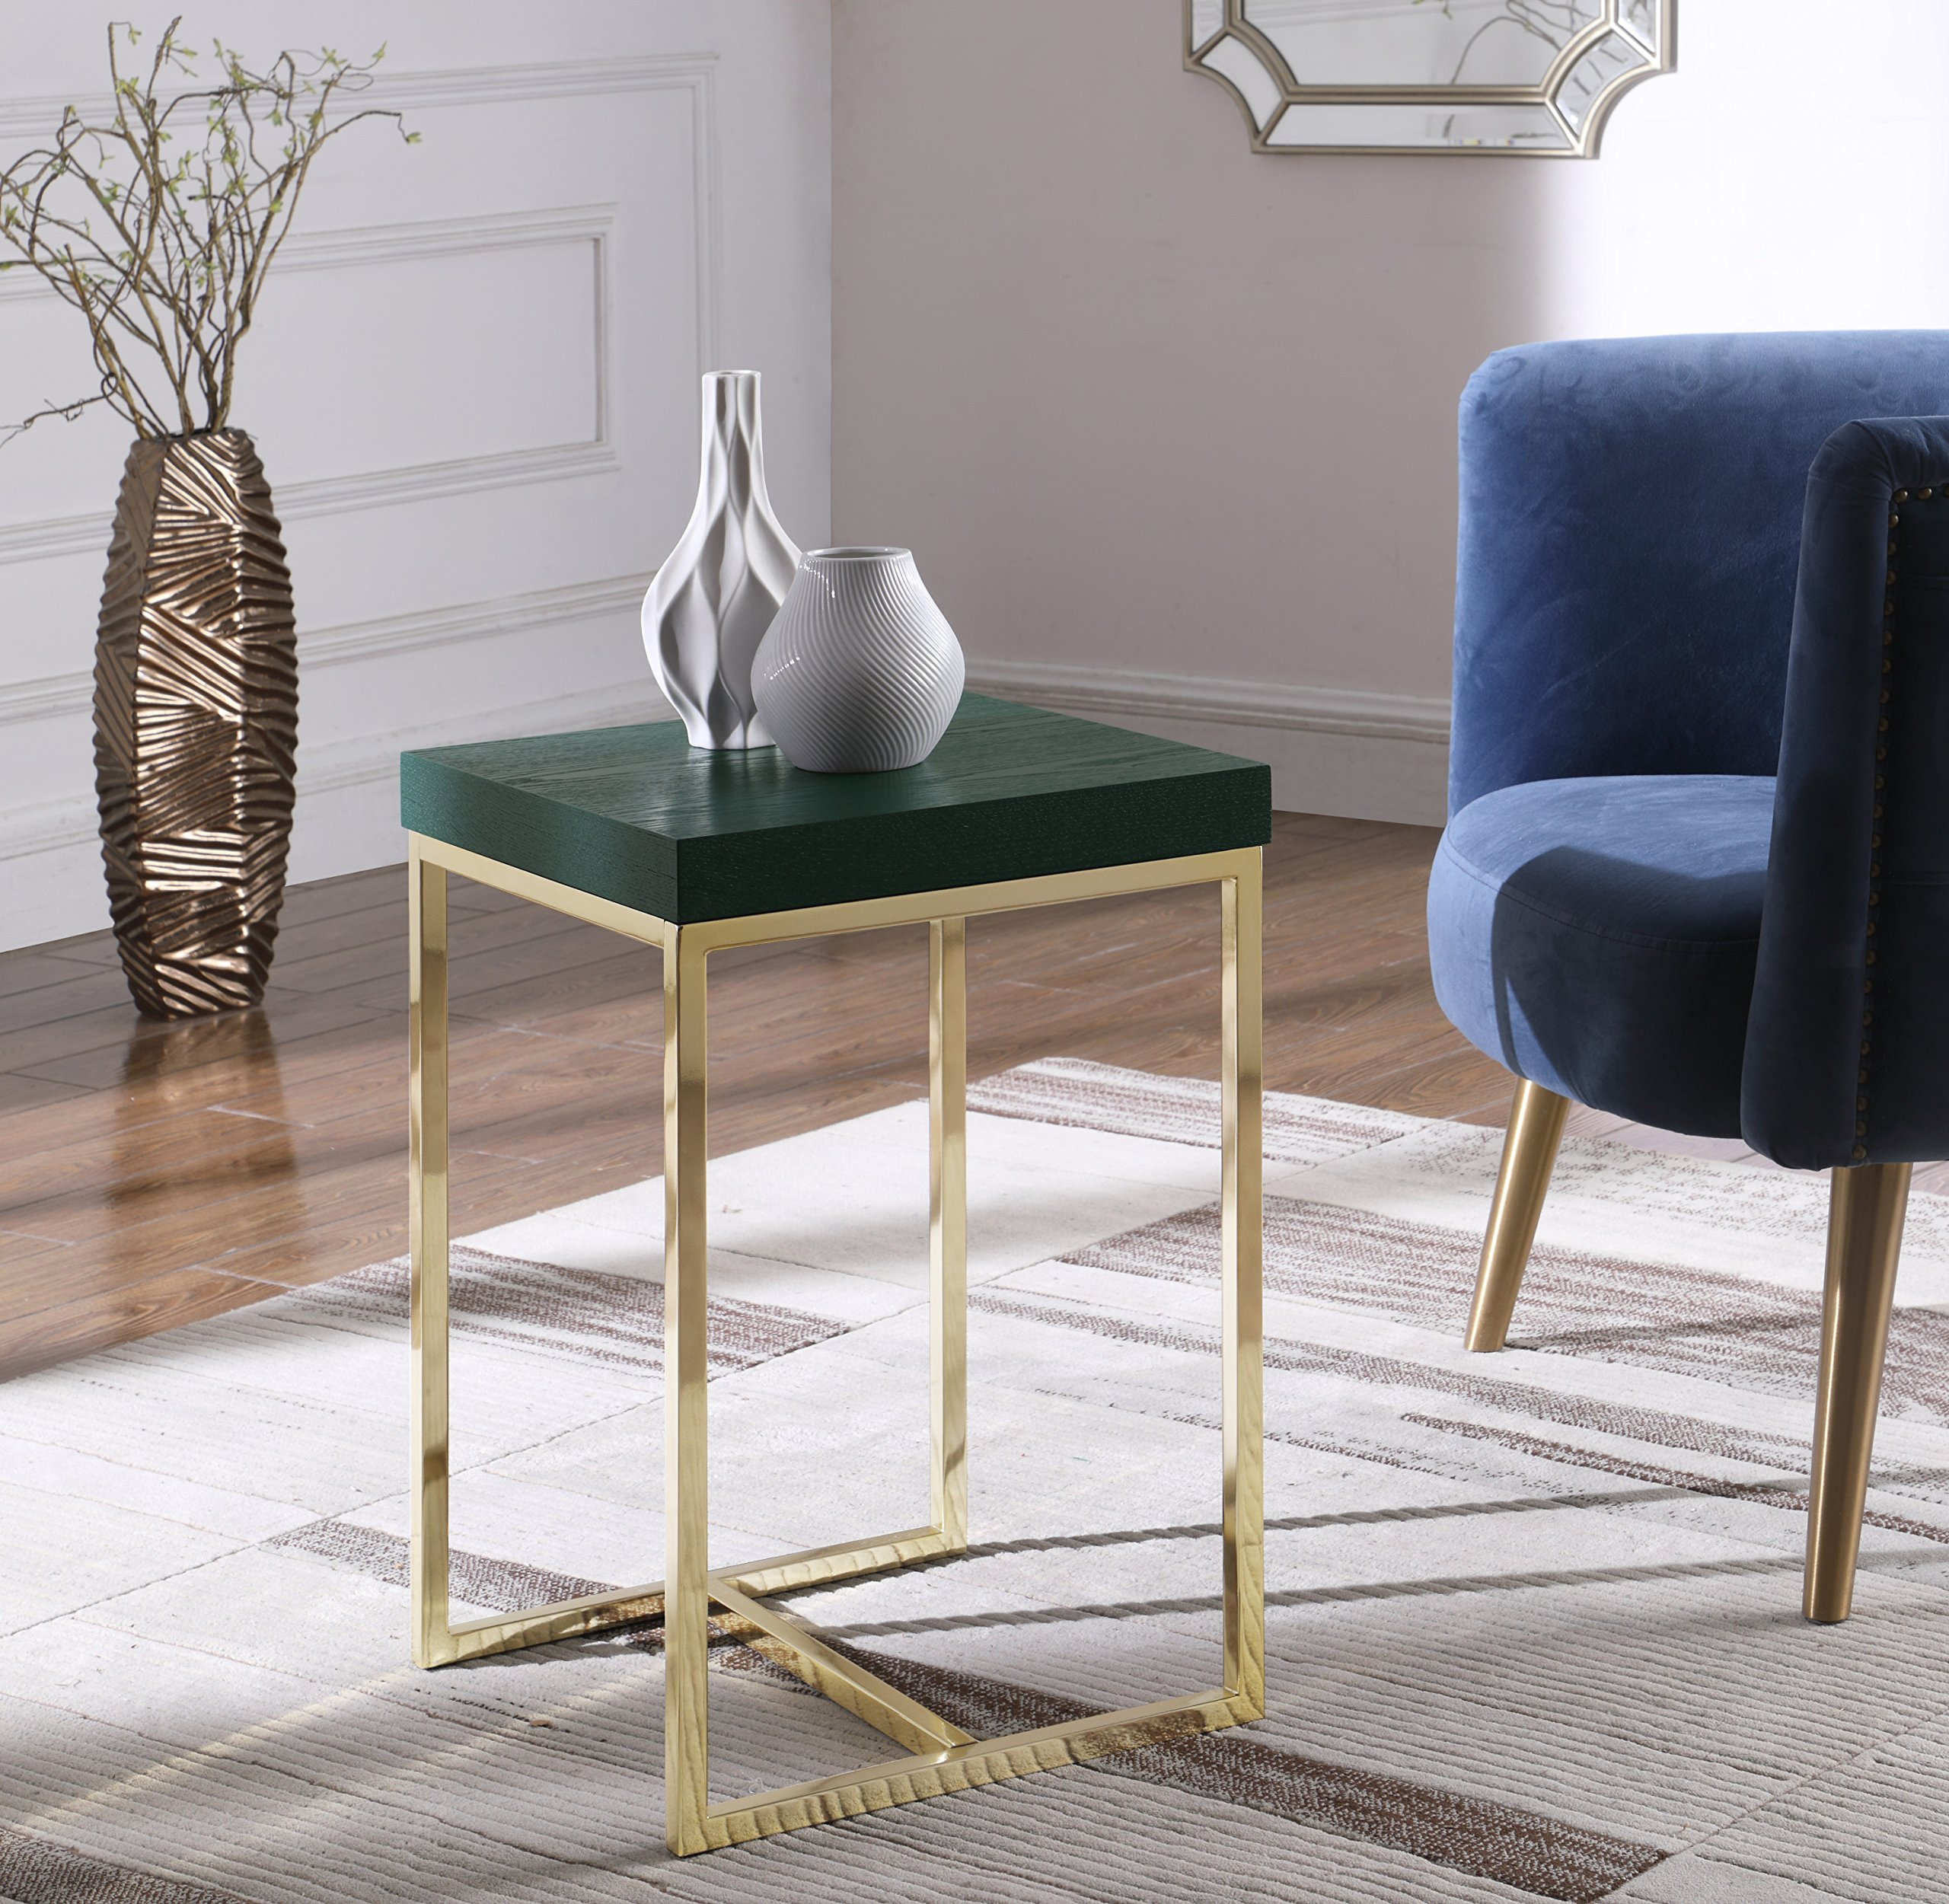 Iconic Home Colmar Nightstand Side Table with Ash Veneer Top Brass Brushed Stainless Steel Base, Modern Contemporary, Green